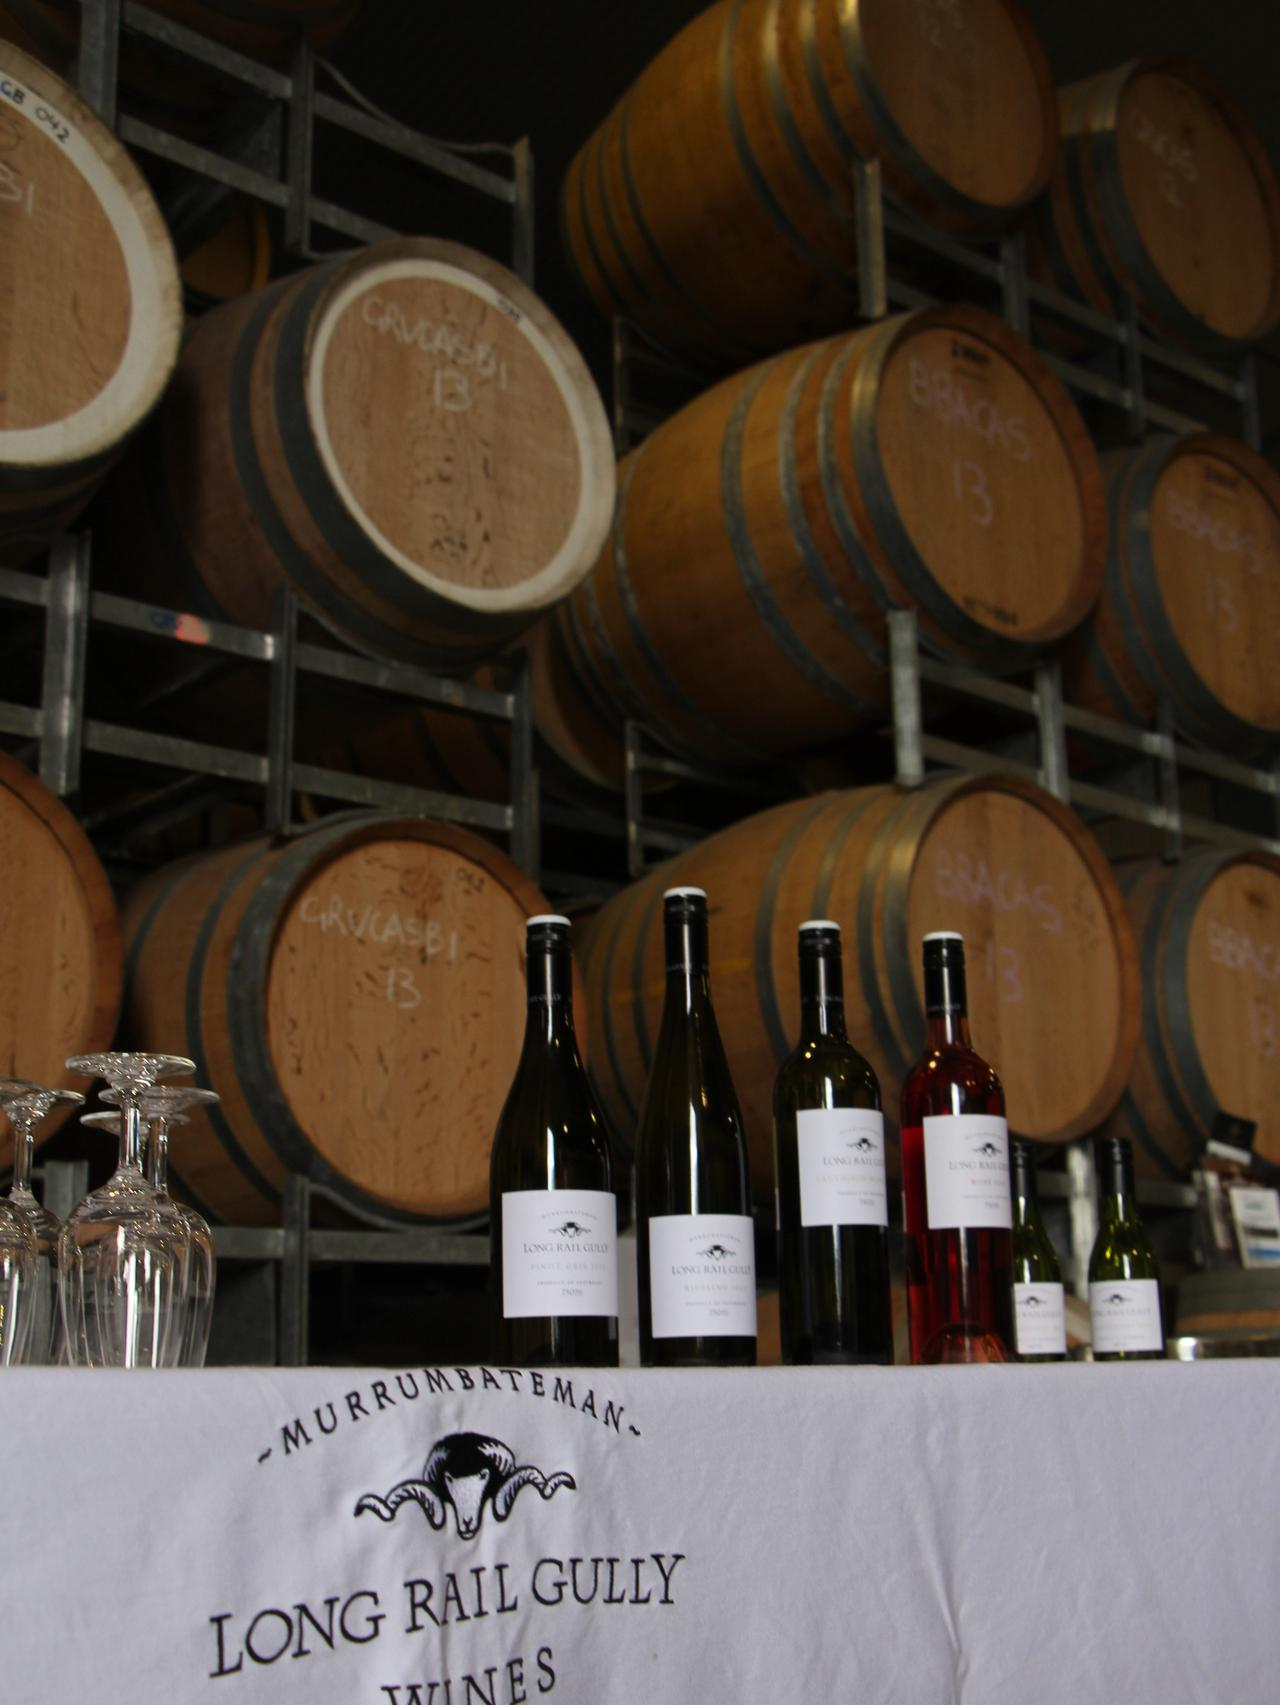 Supplied Travel Canberra wine, Canberra. Bottles ready for tasting in the winery at Long Rail Gully Wines in the